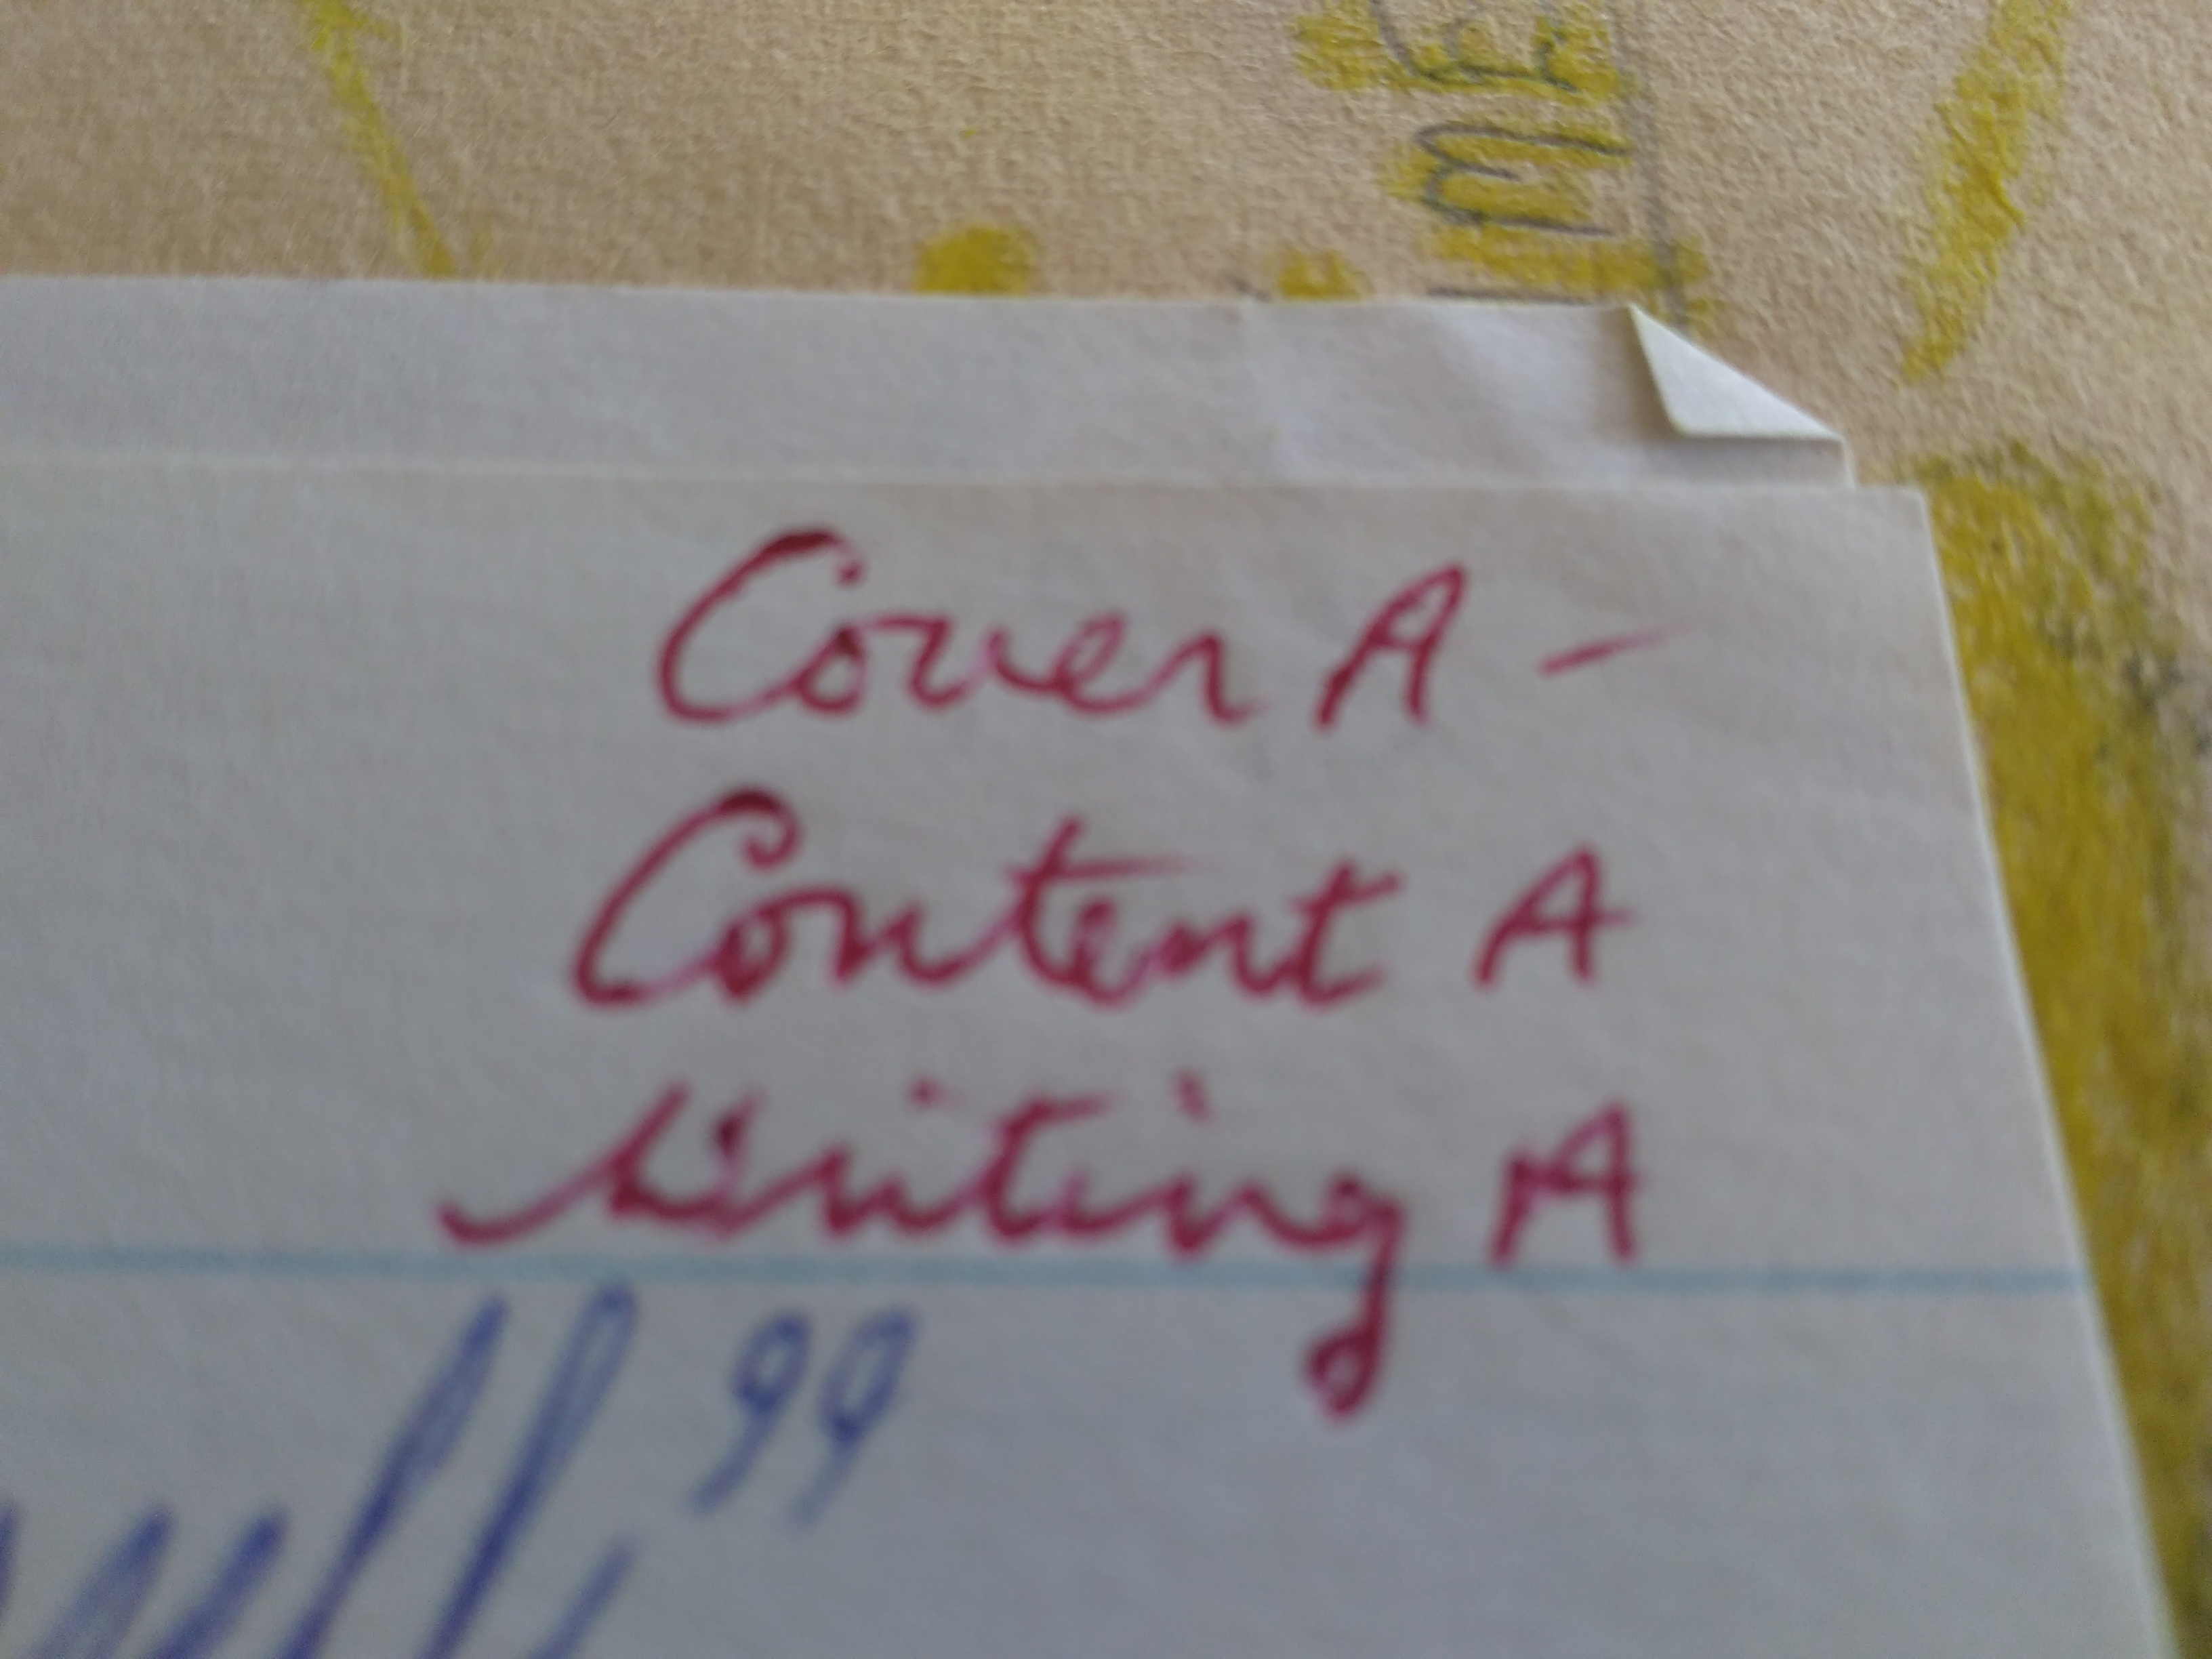 Caption: Cover A-. Content A. Writing A., Credit: Susan Cook